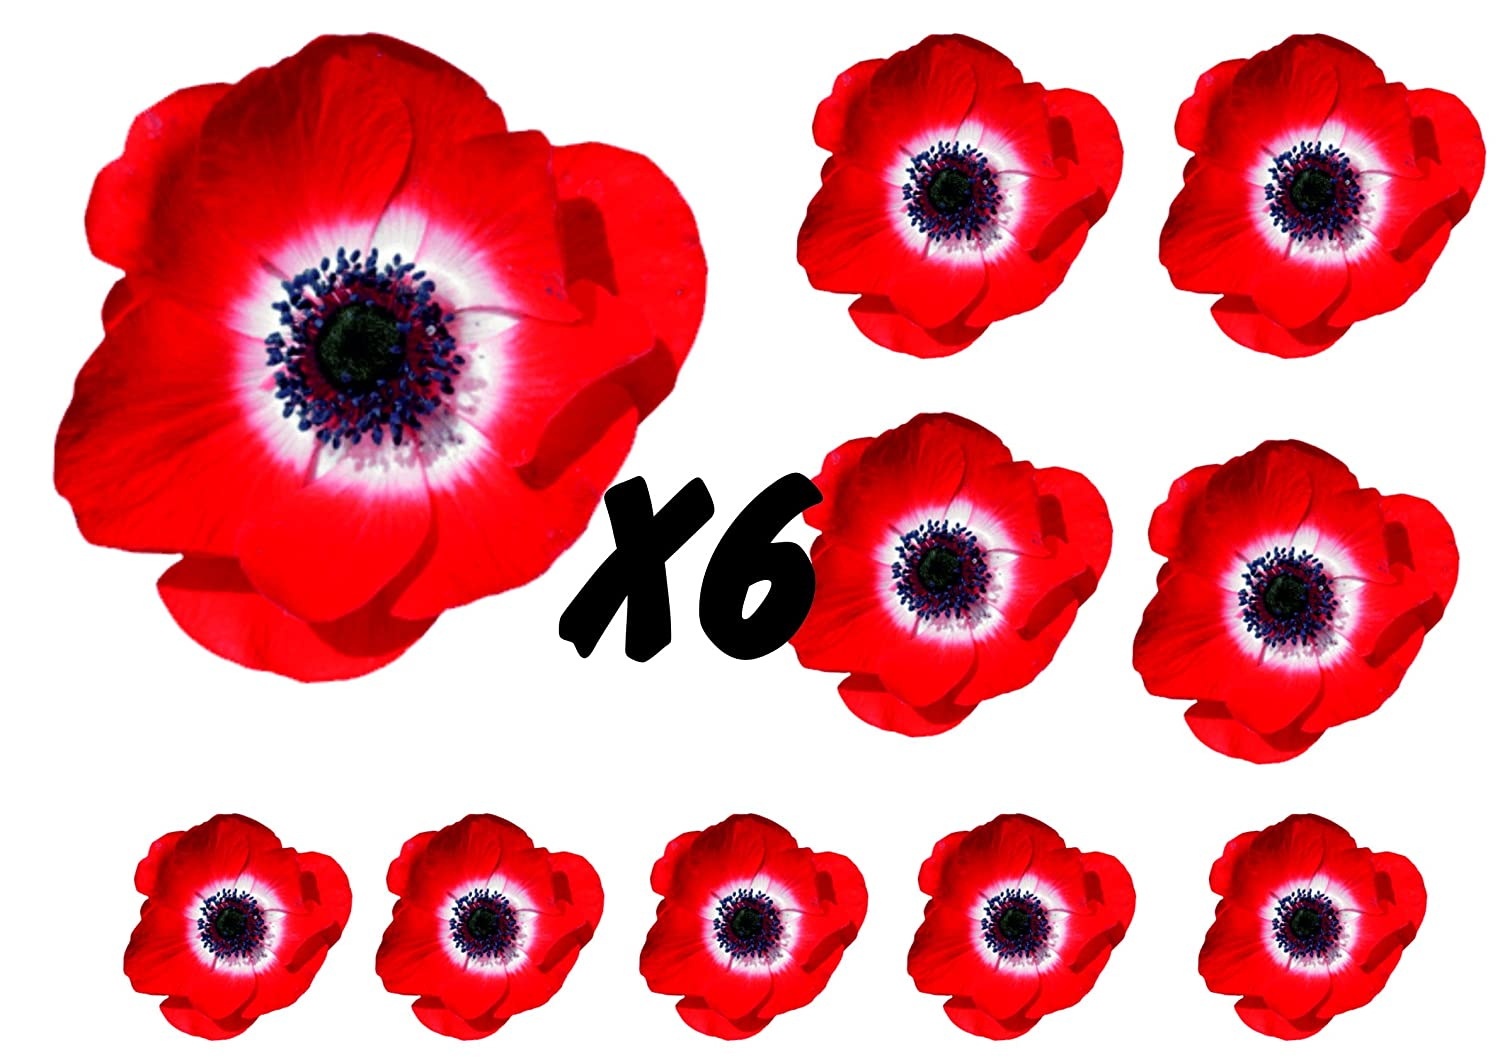 Poppies Flower Decals Car Stickers Graphics Nursery Wall Window Decorations Art 10 Pack (10) WaterShed Designs